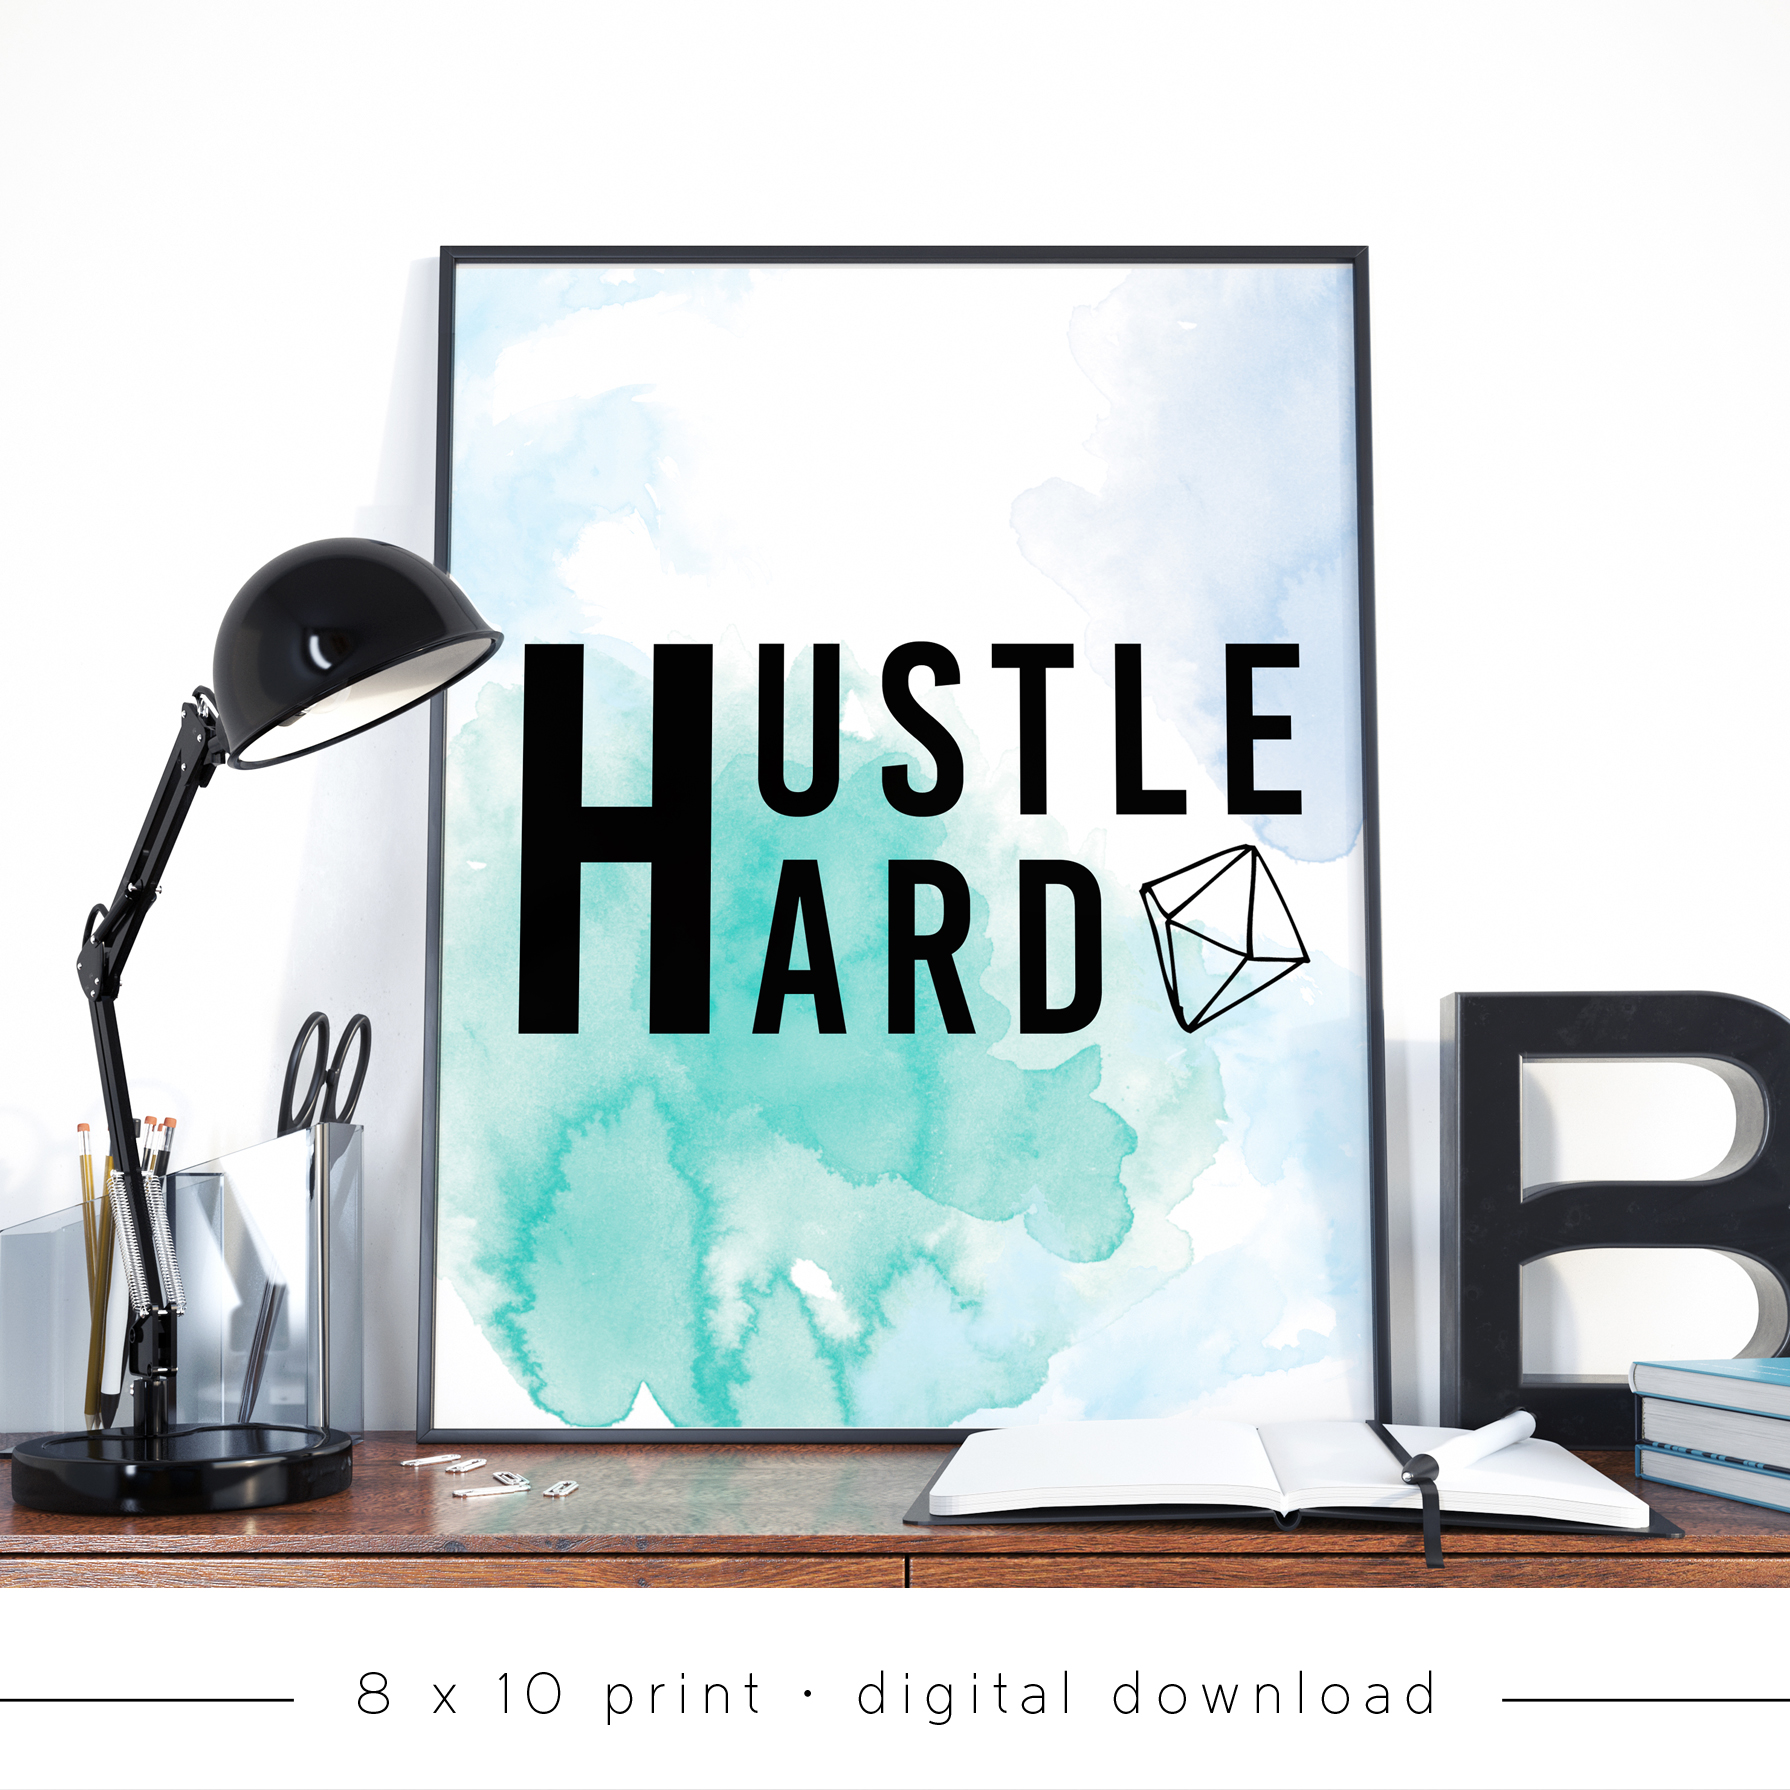 twgdesigns-designs-art-print-printable-quote-inspirational-digital-download-etsy-illustration-watercolor-boho-crystal-hustle